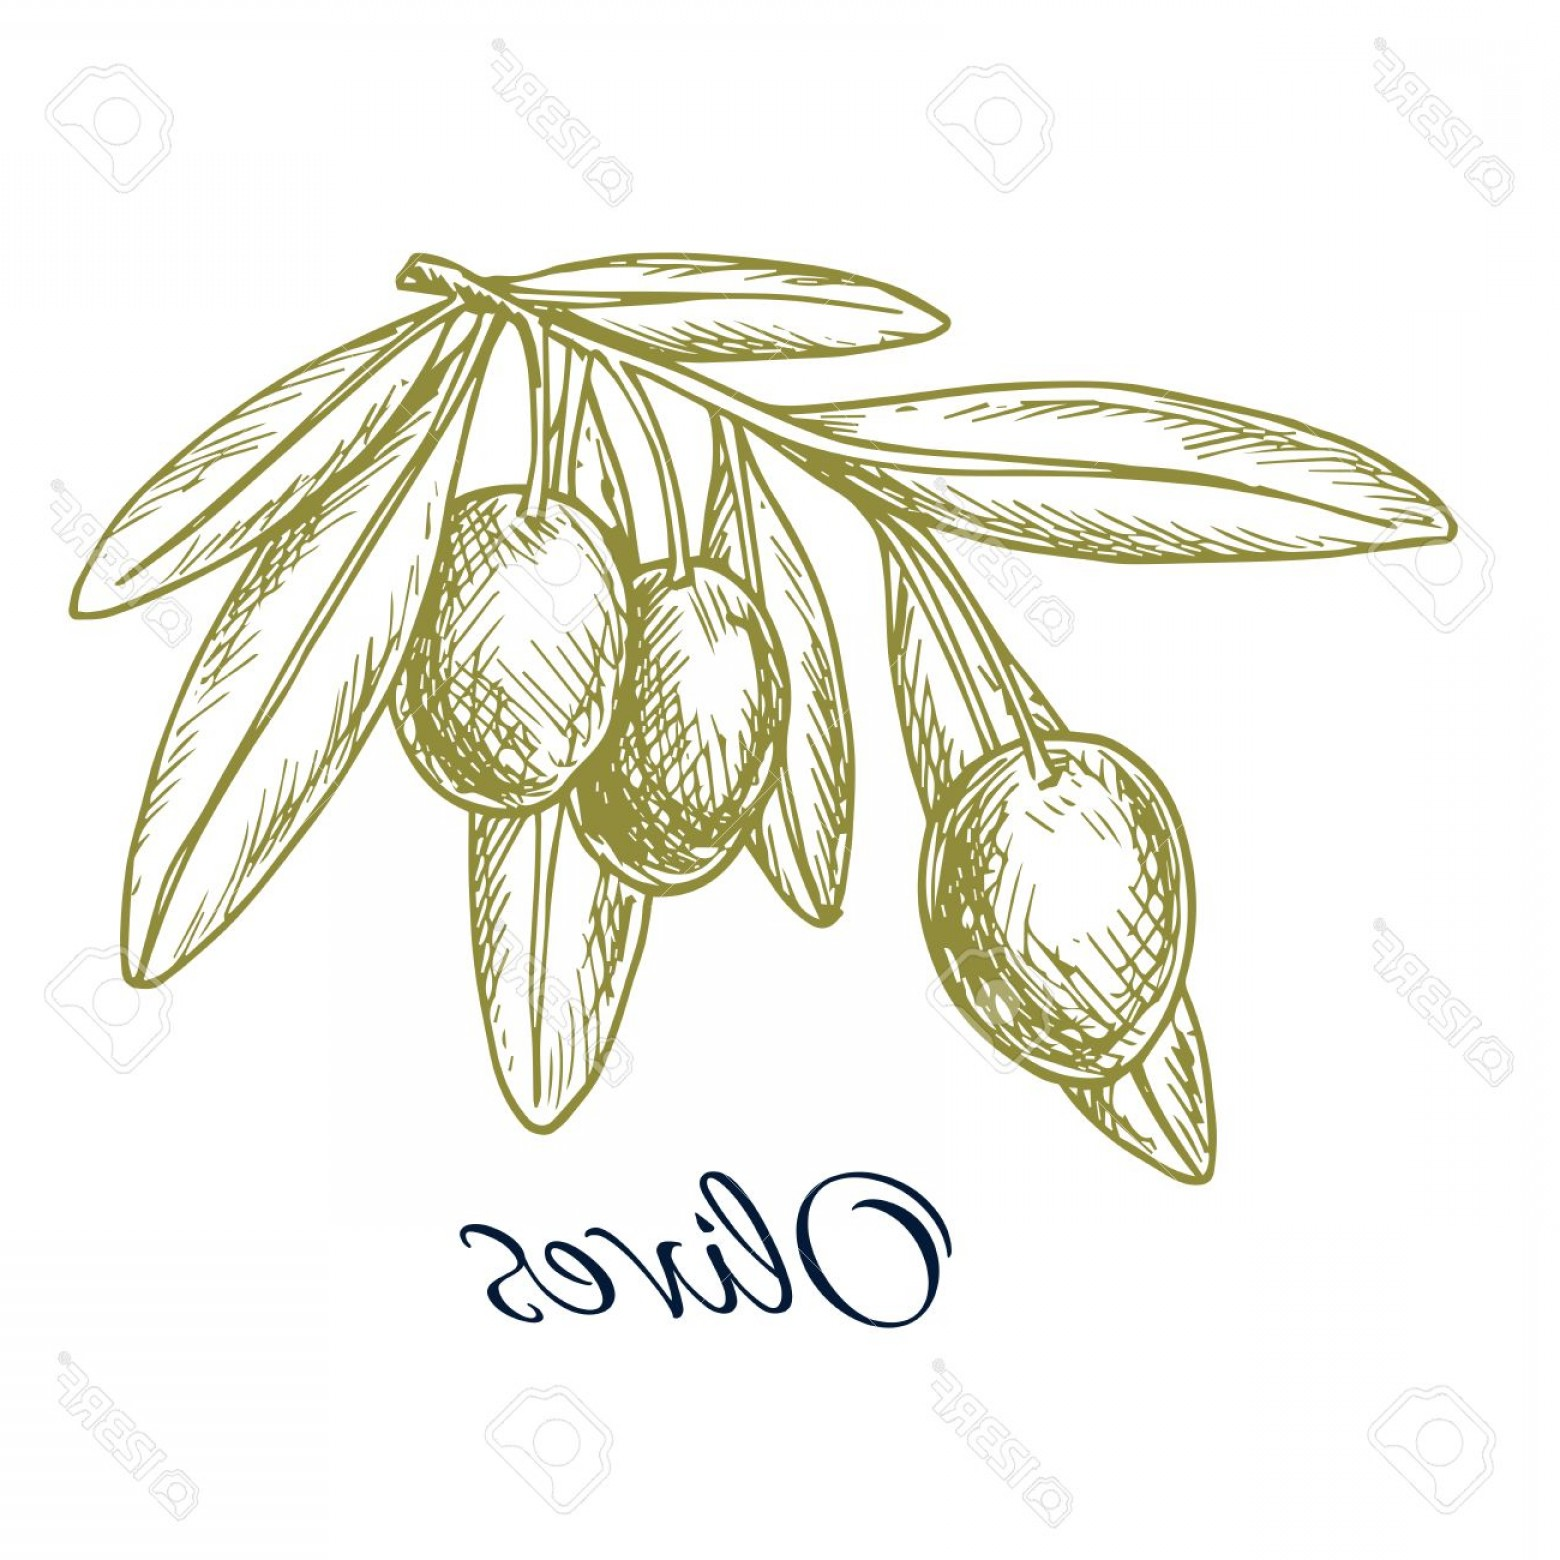 Olive Vector: Photostock Vector Sketch Of Green Olives Vector Isolated Icon Of Olive Branch With Green Olive Fruits Design Or Symbol